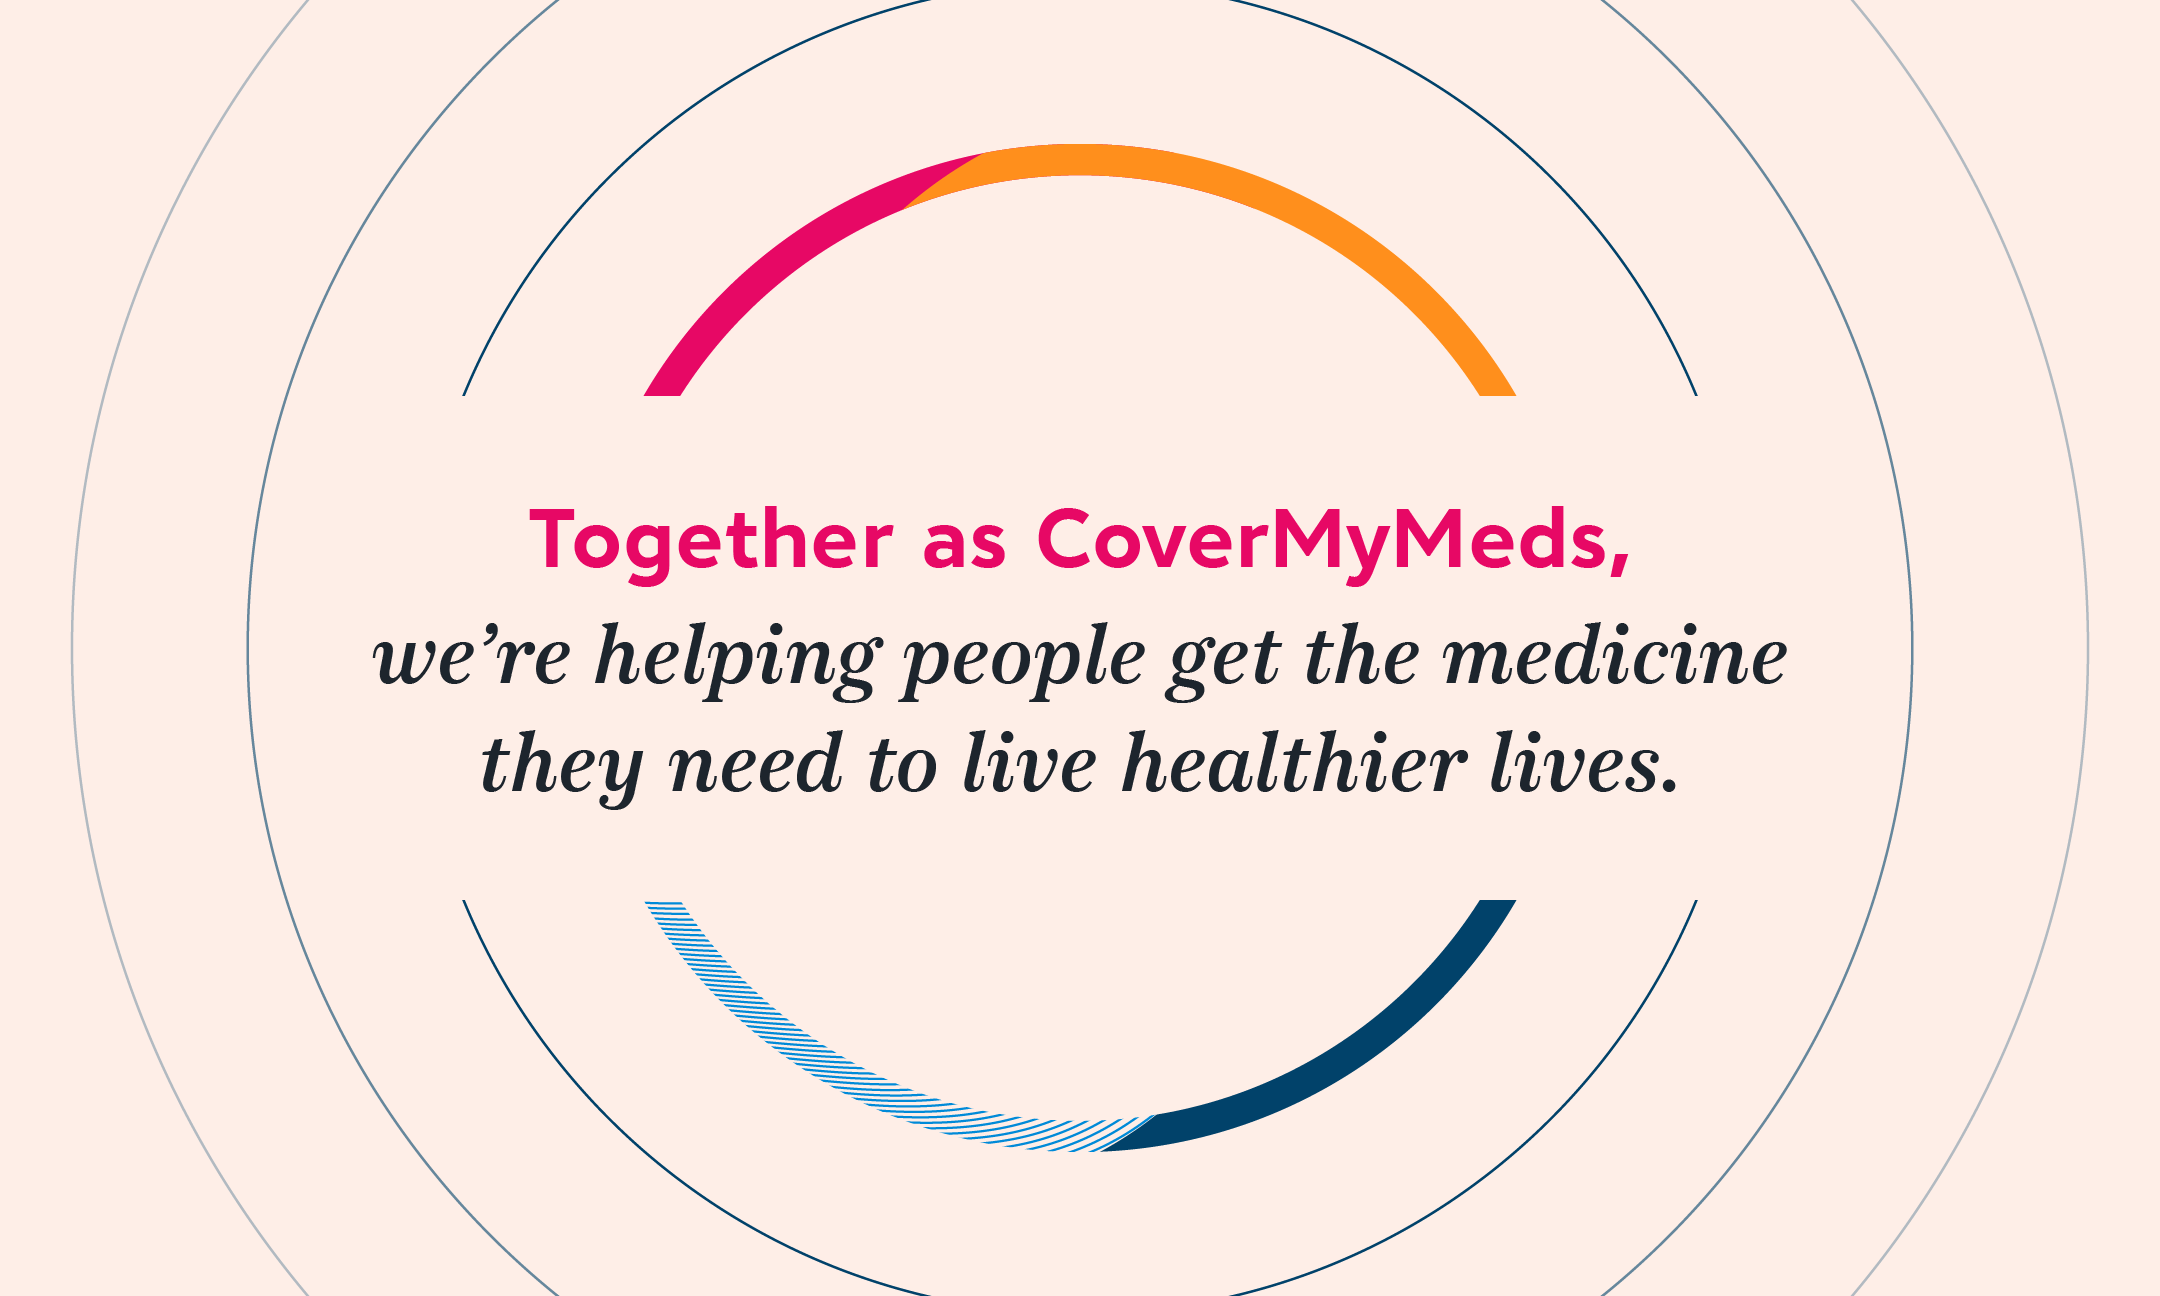 CoverMyMeds' shared purpose.